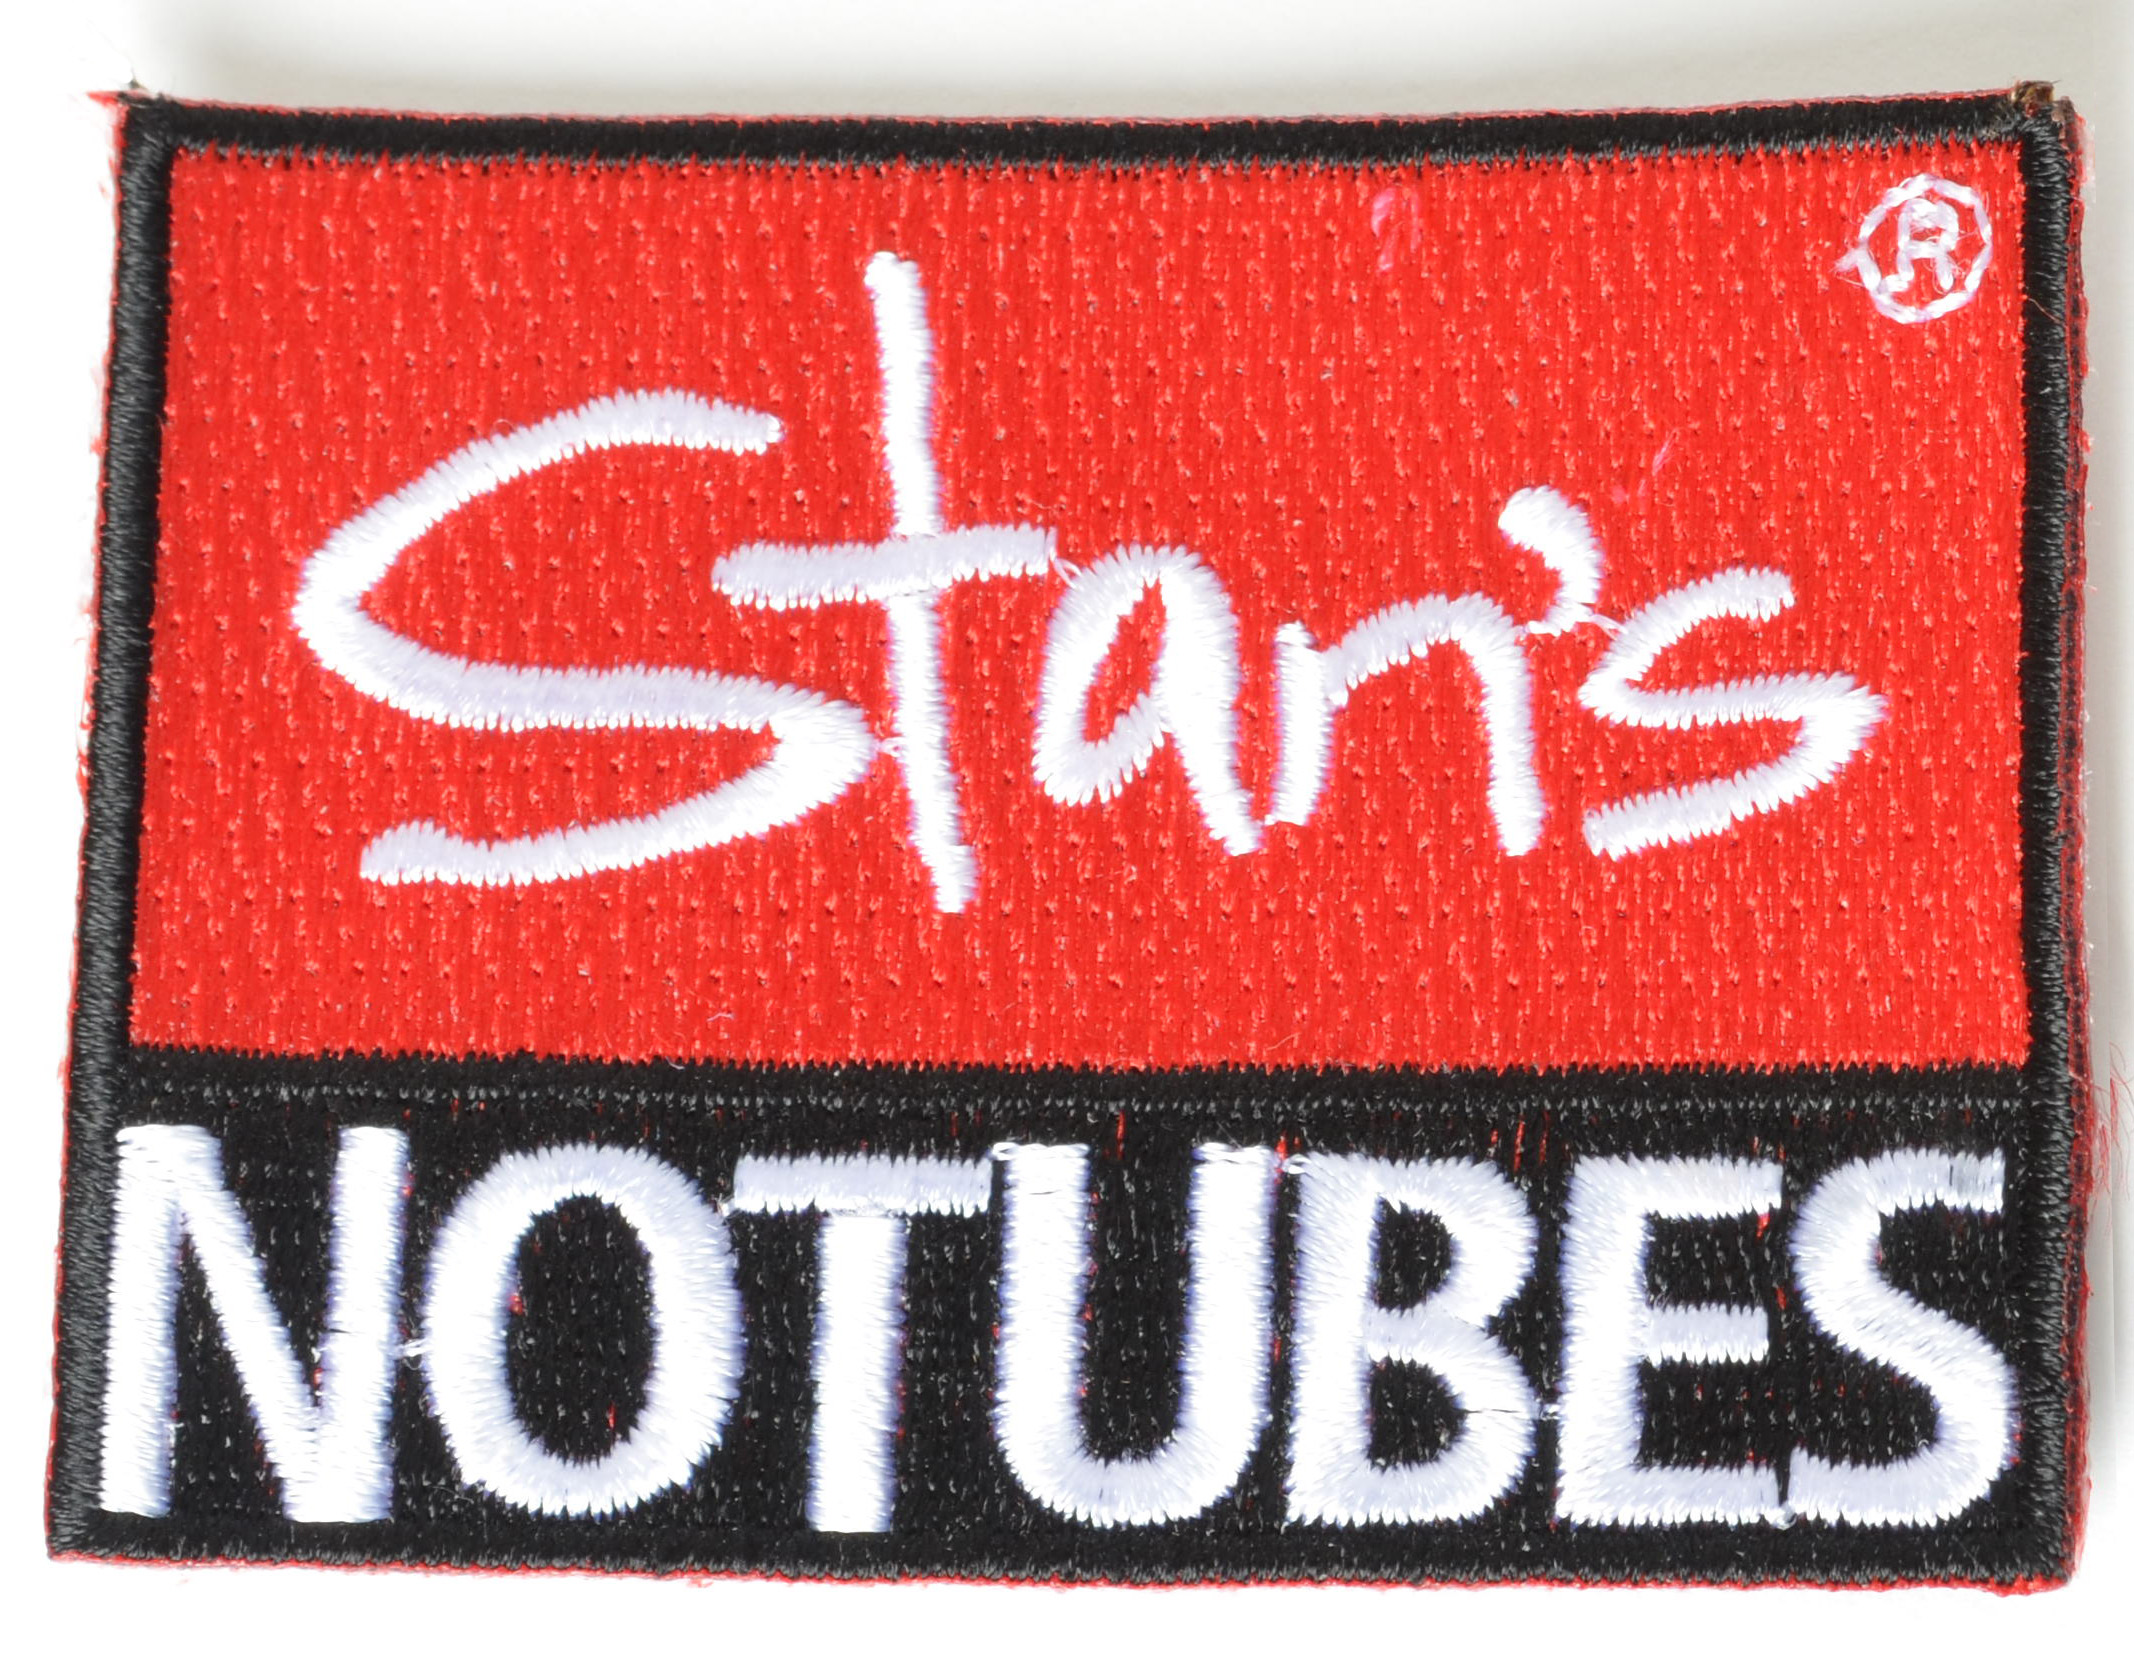 NOTUBES LOGO PATCH, Red, 2